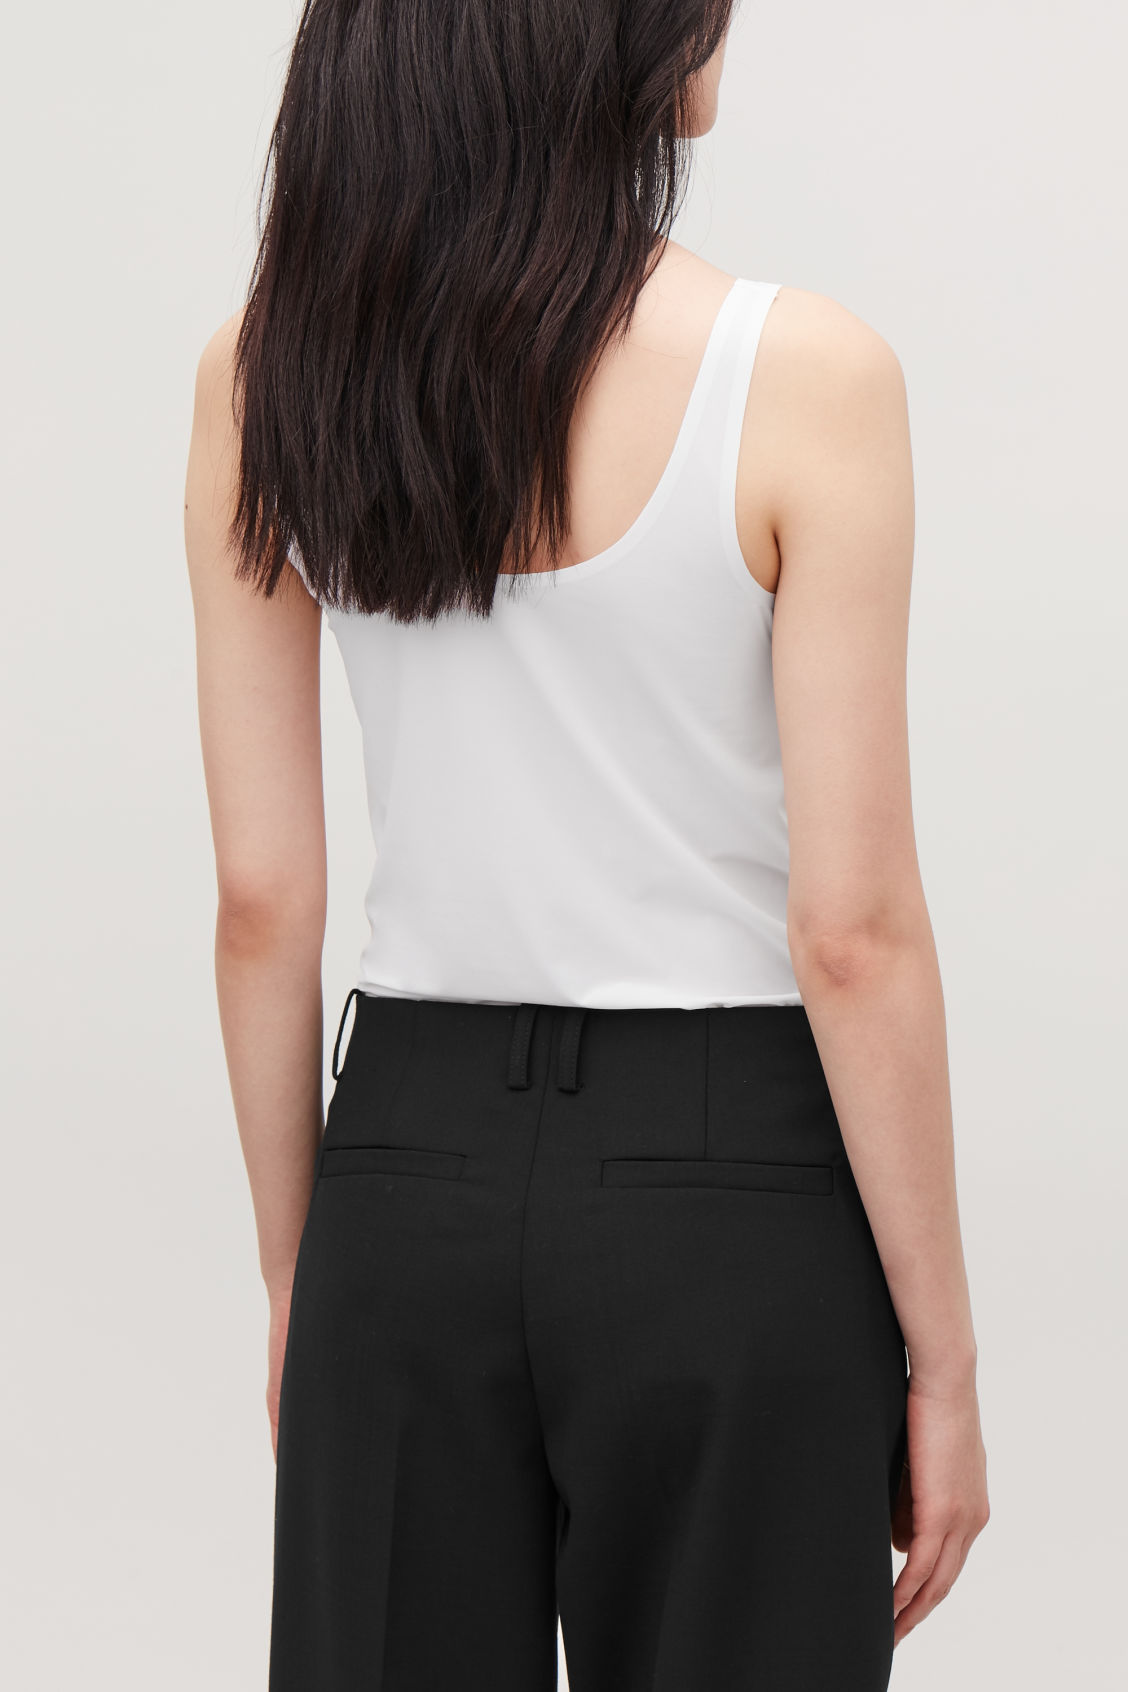 Model side image of Cos seamless vest top  in white